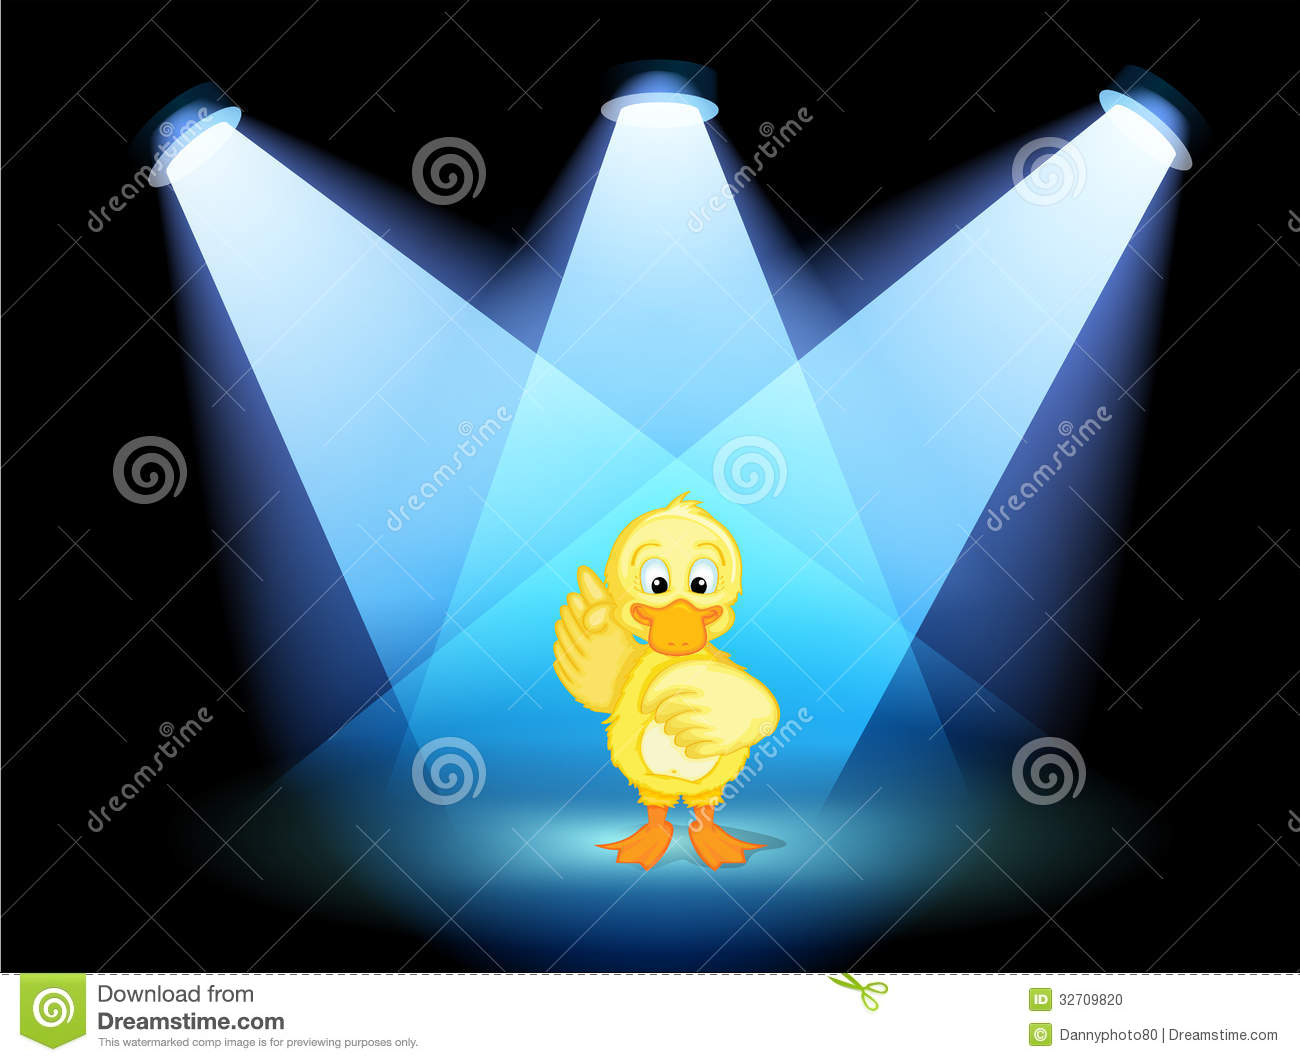 A duck with spotlights